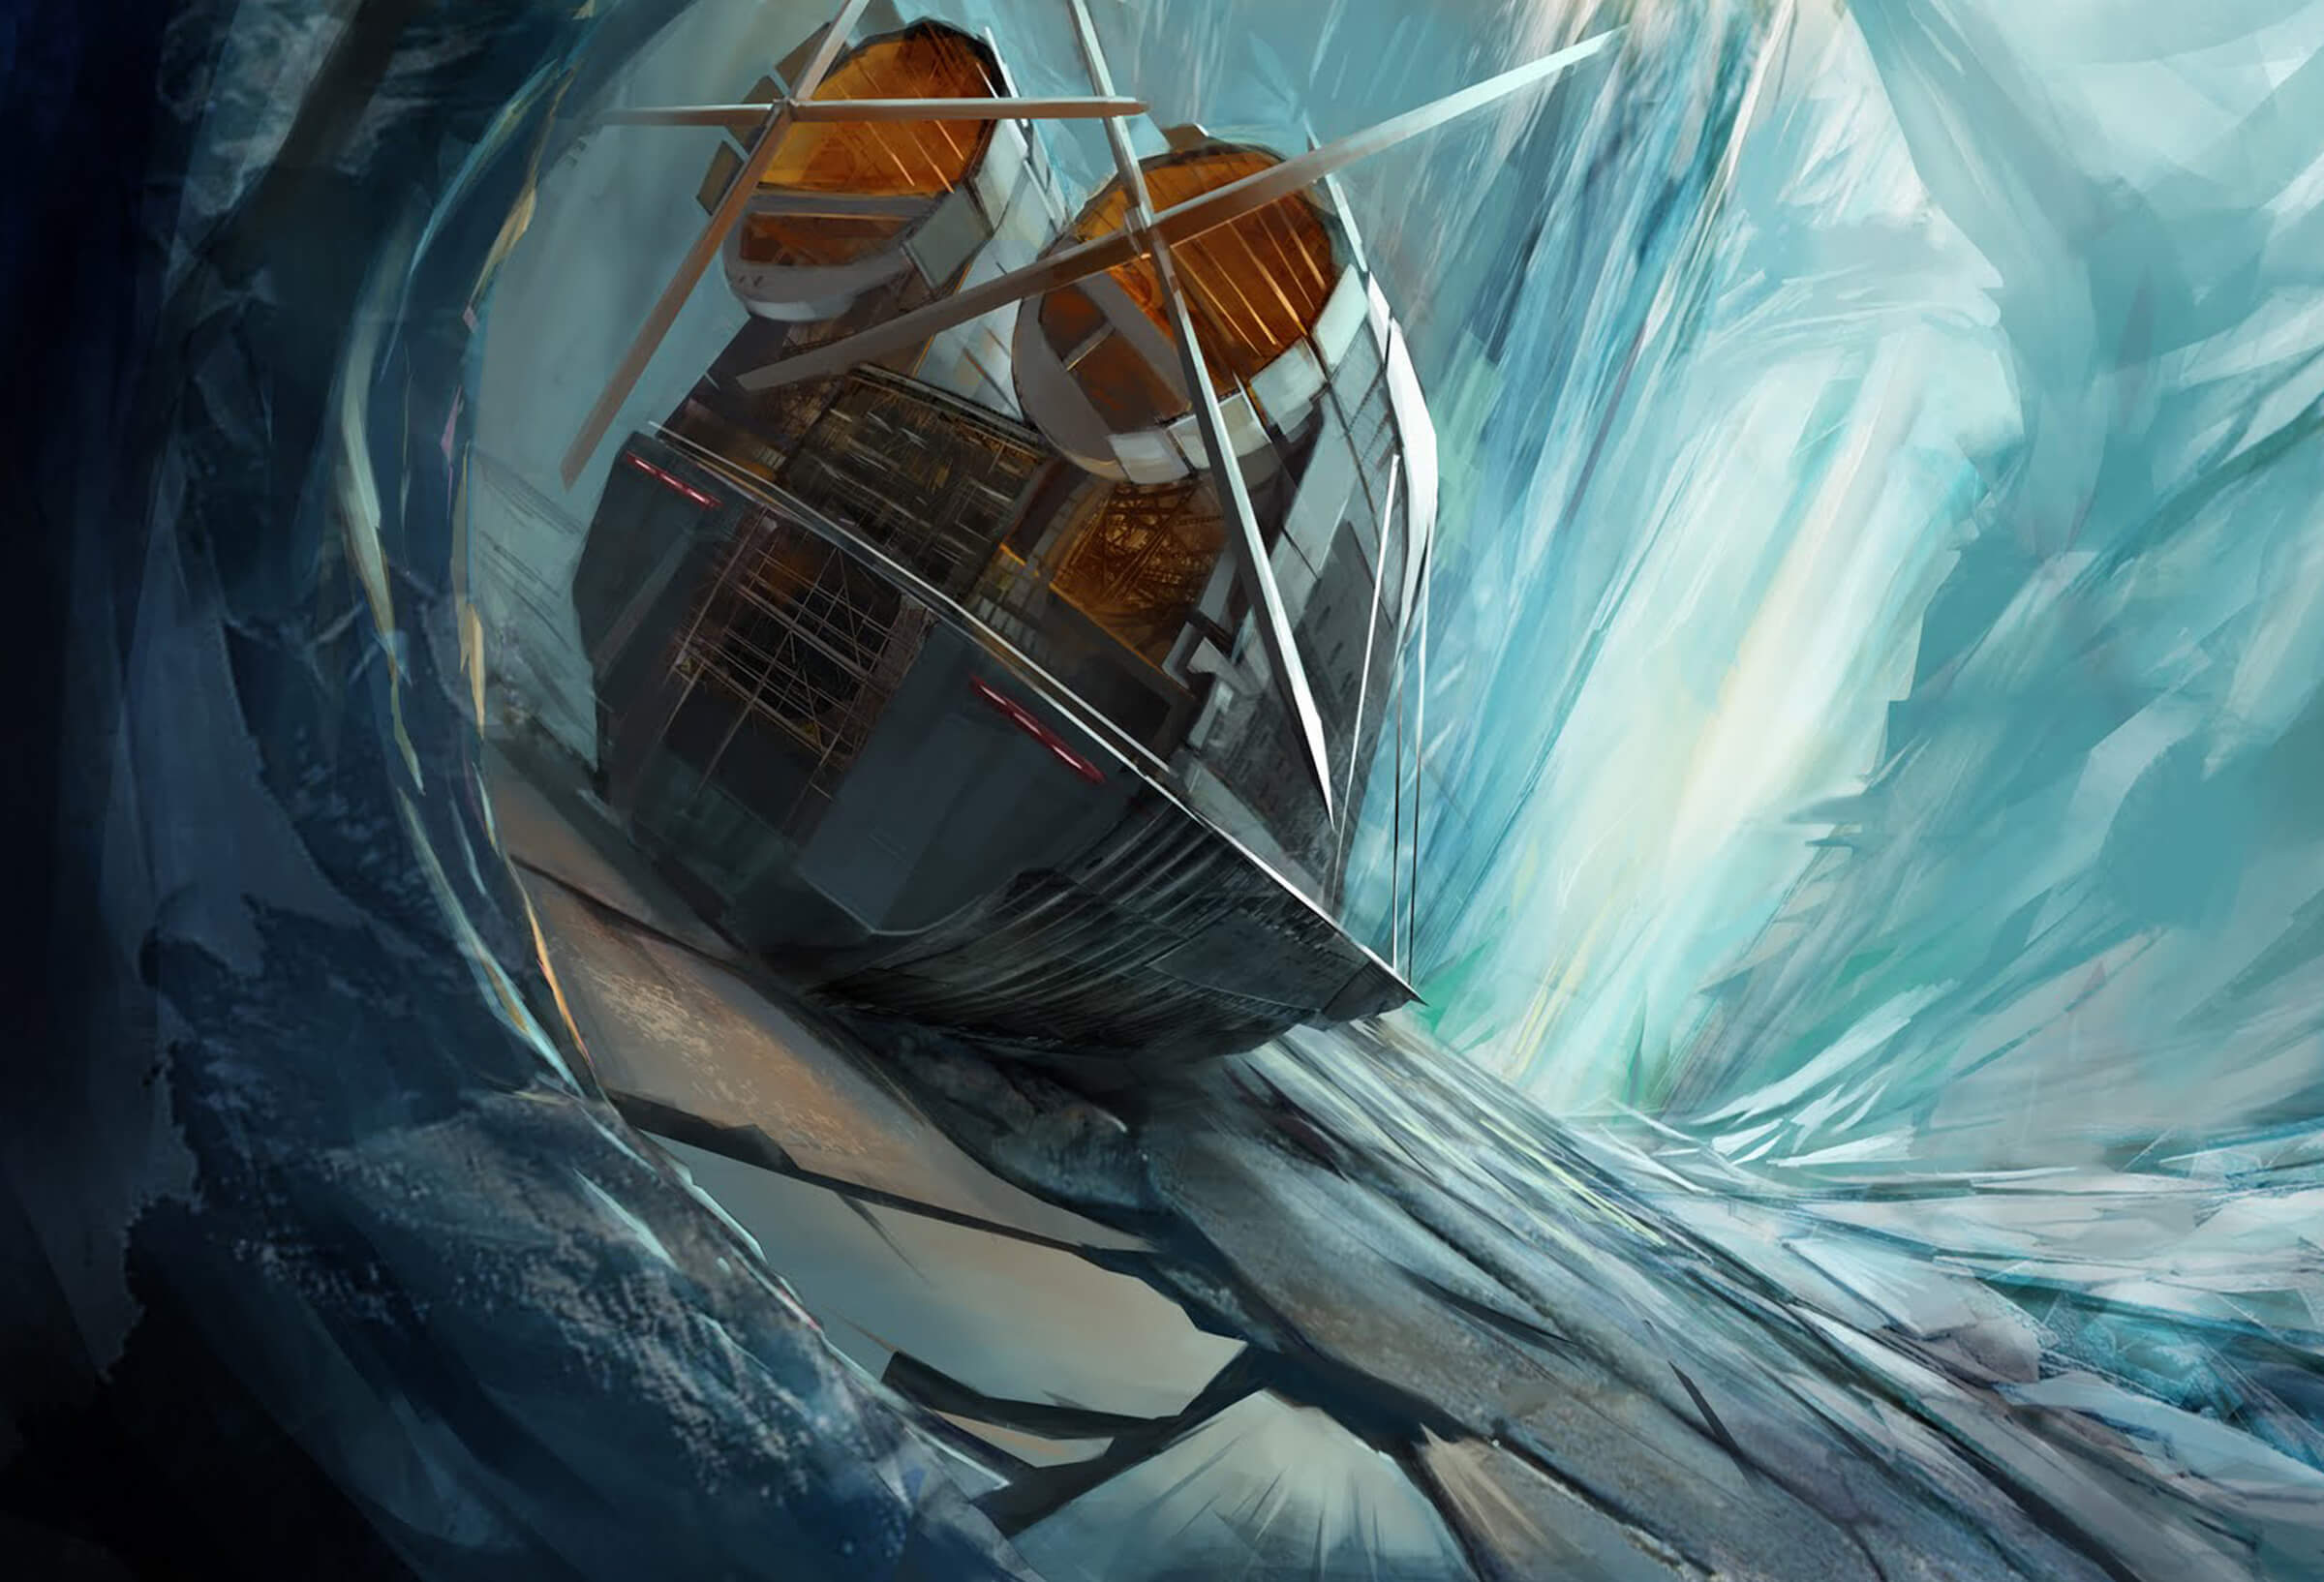 digital painting of a ship with huge propellers entering an icy cavern